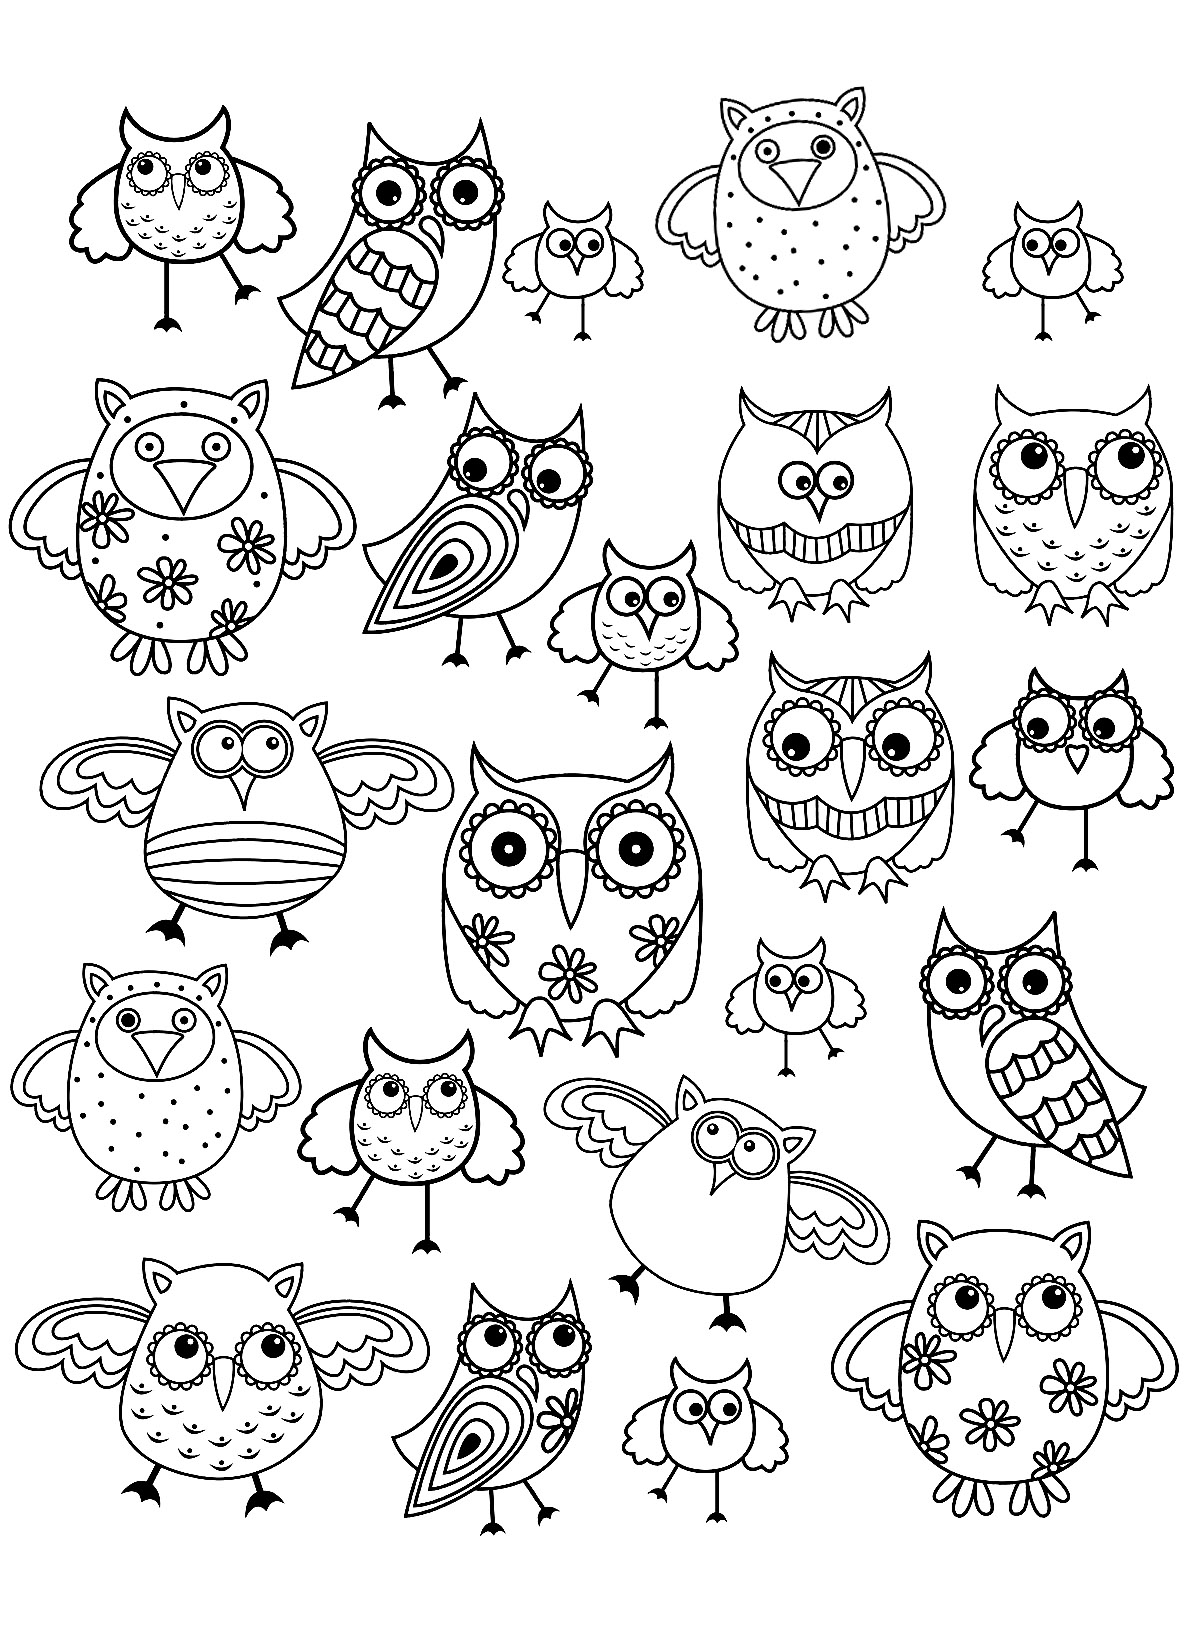 Doodle Simple Hibou Coloriage Doodle Art Coloriages Pour Enfants